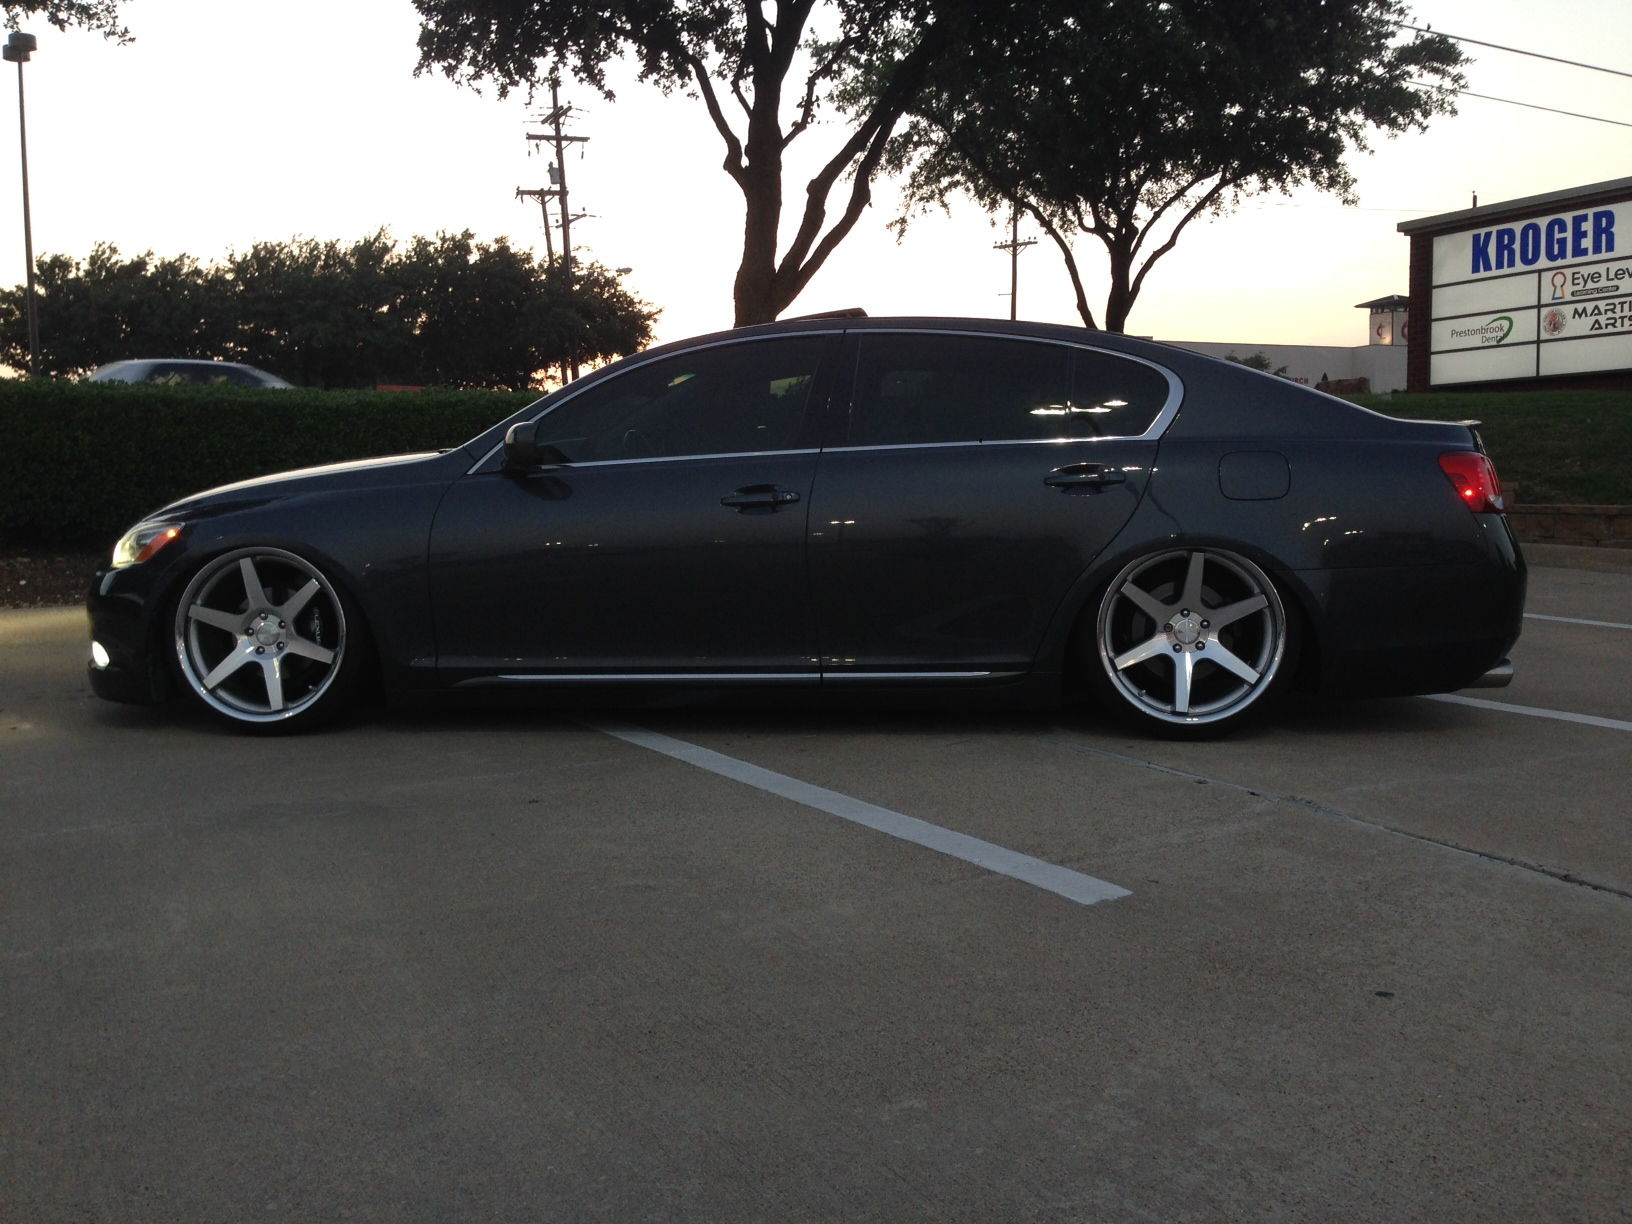 What type of wheel looks best on a 2010 Lexus GS 350 AWD